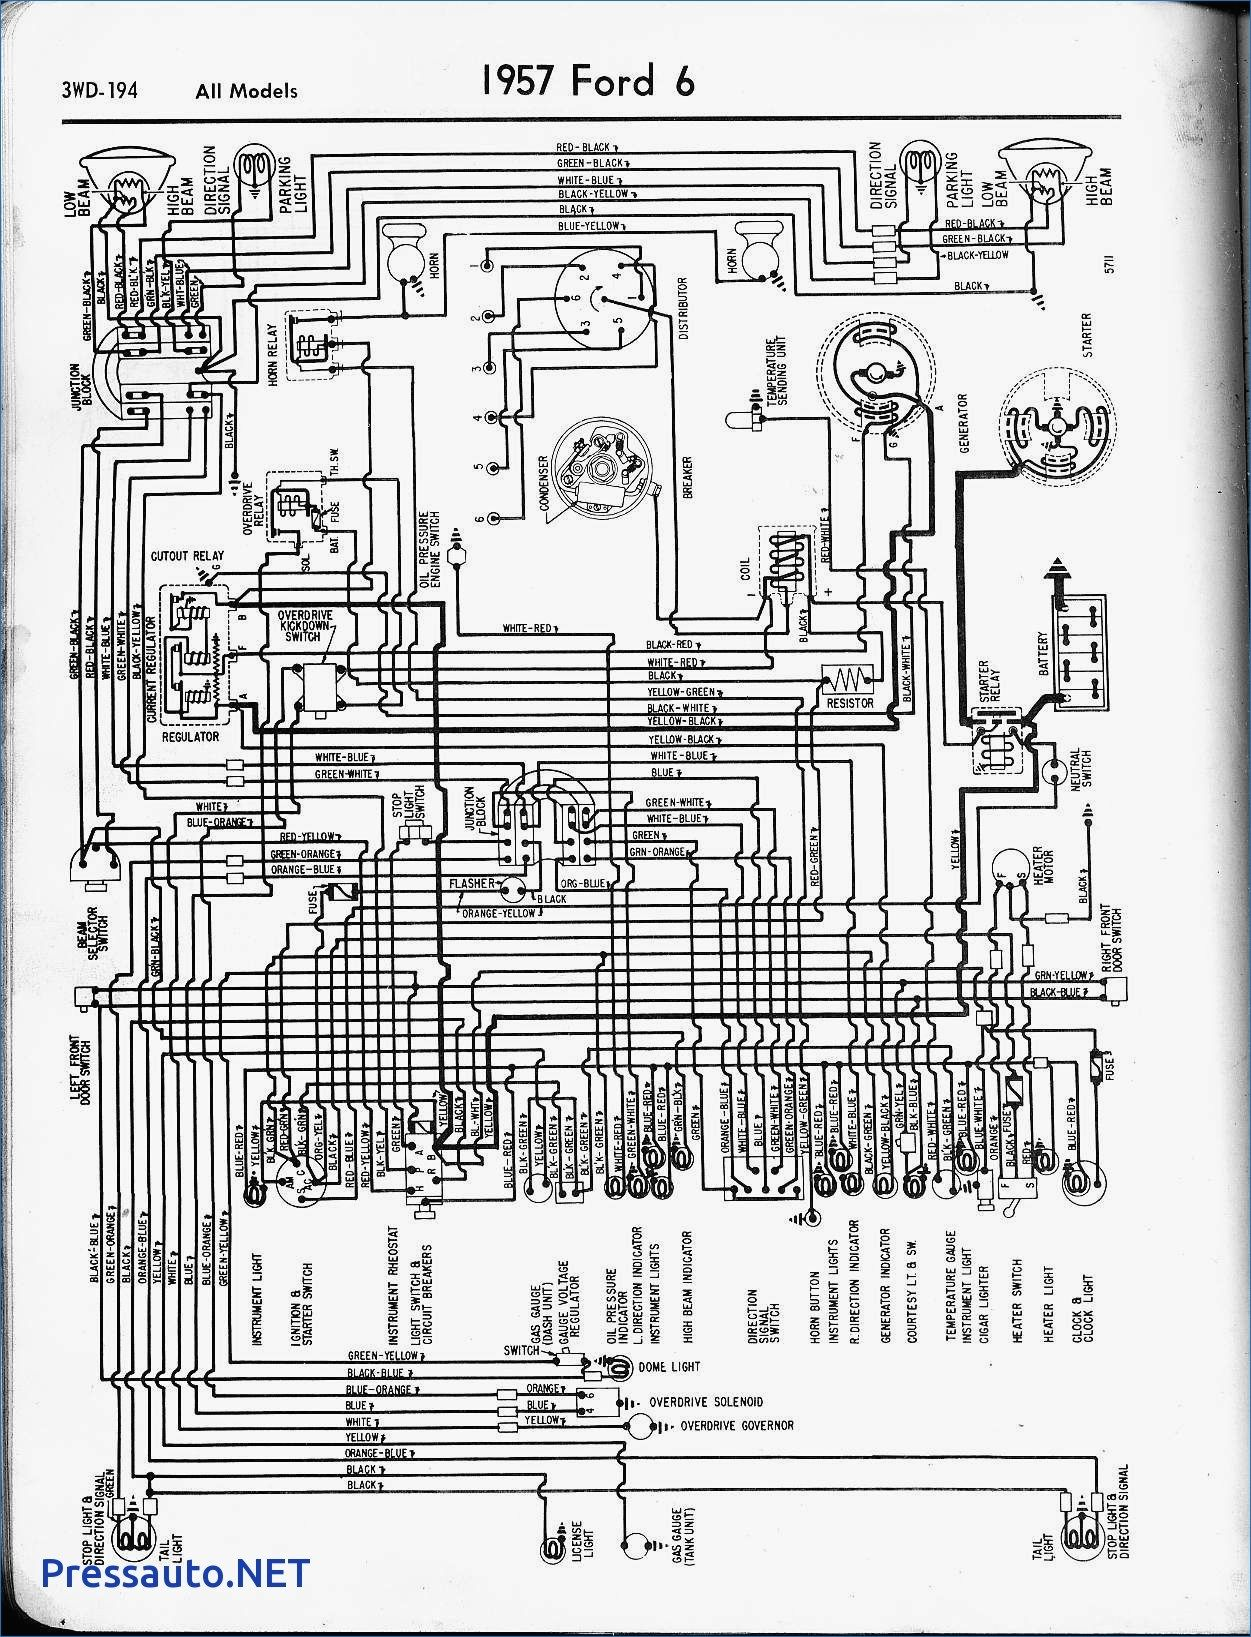 1954 Ford Crestline Wiring Diagram Reinvent Your 1960 F100 Loom Peugeot 307 Power Steering Pressauto Net In On Rh Pinterest Com Brake Light Switch 1953